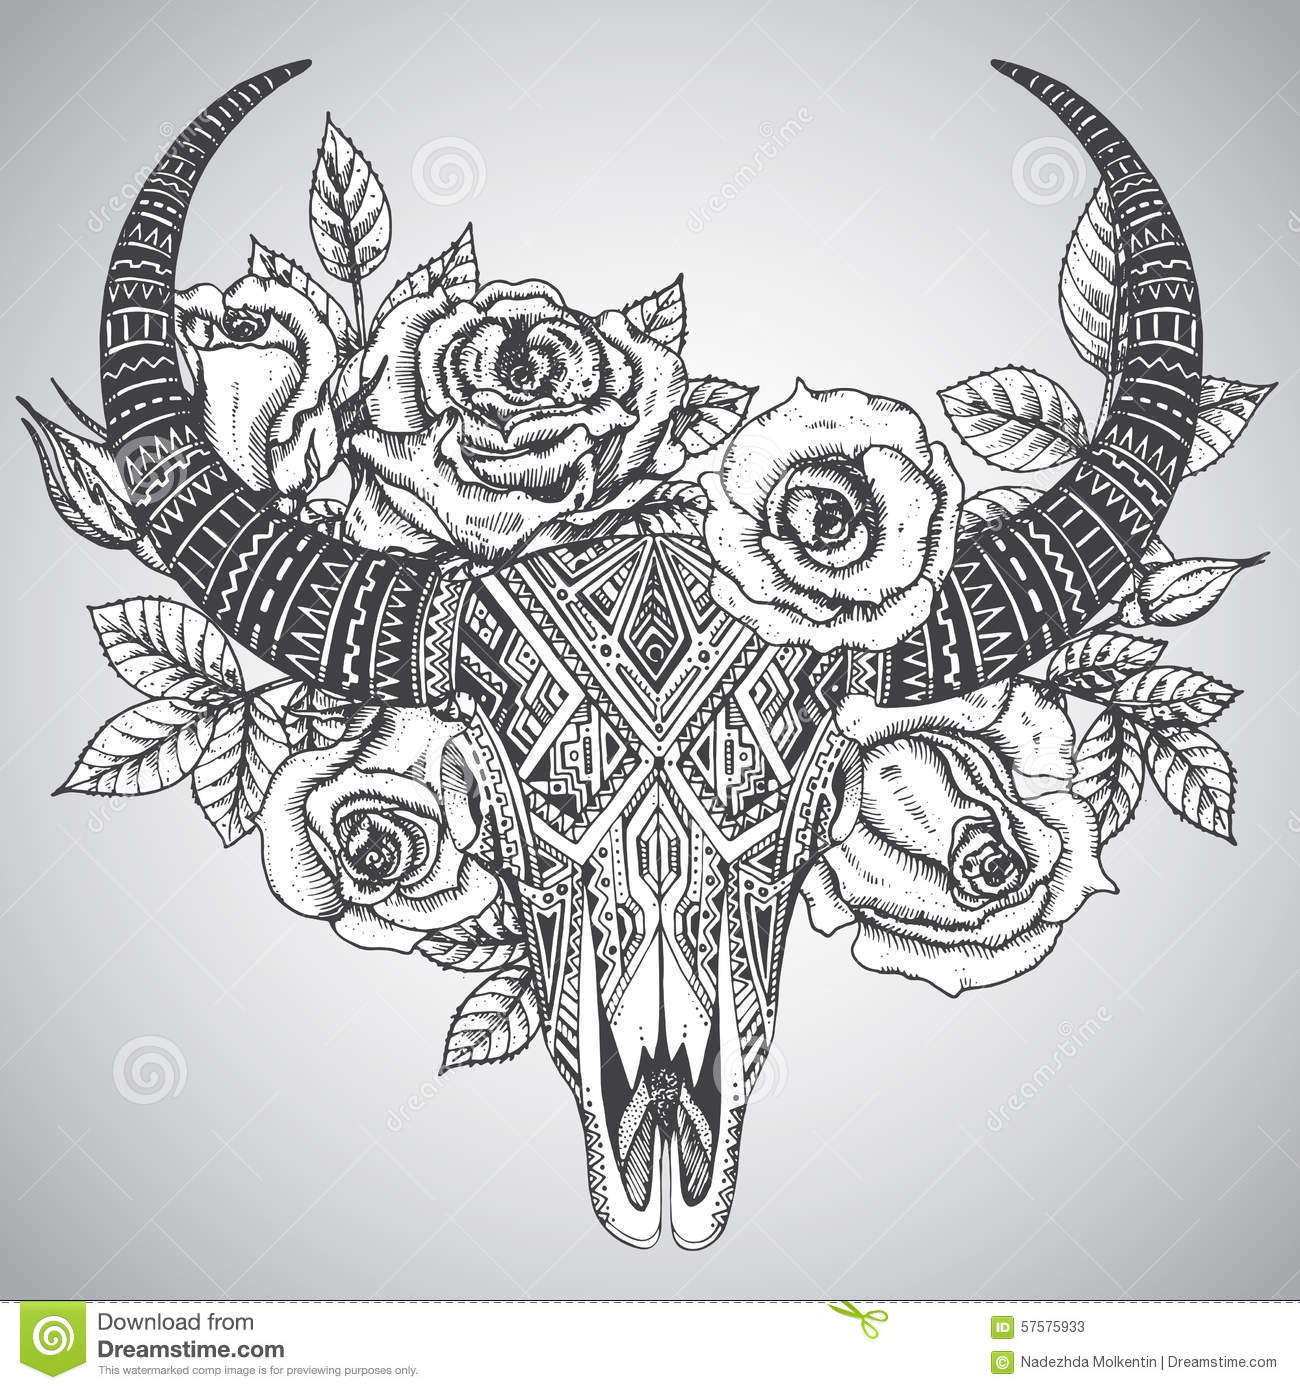 Tribal-Tattoos decorative-indian-bull-skull-tattoo-tribal-style-flowers-roses-leaves-hand-drawn-illustration-57575933